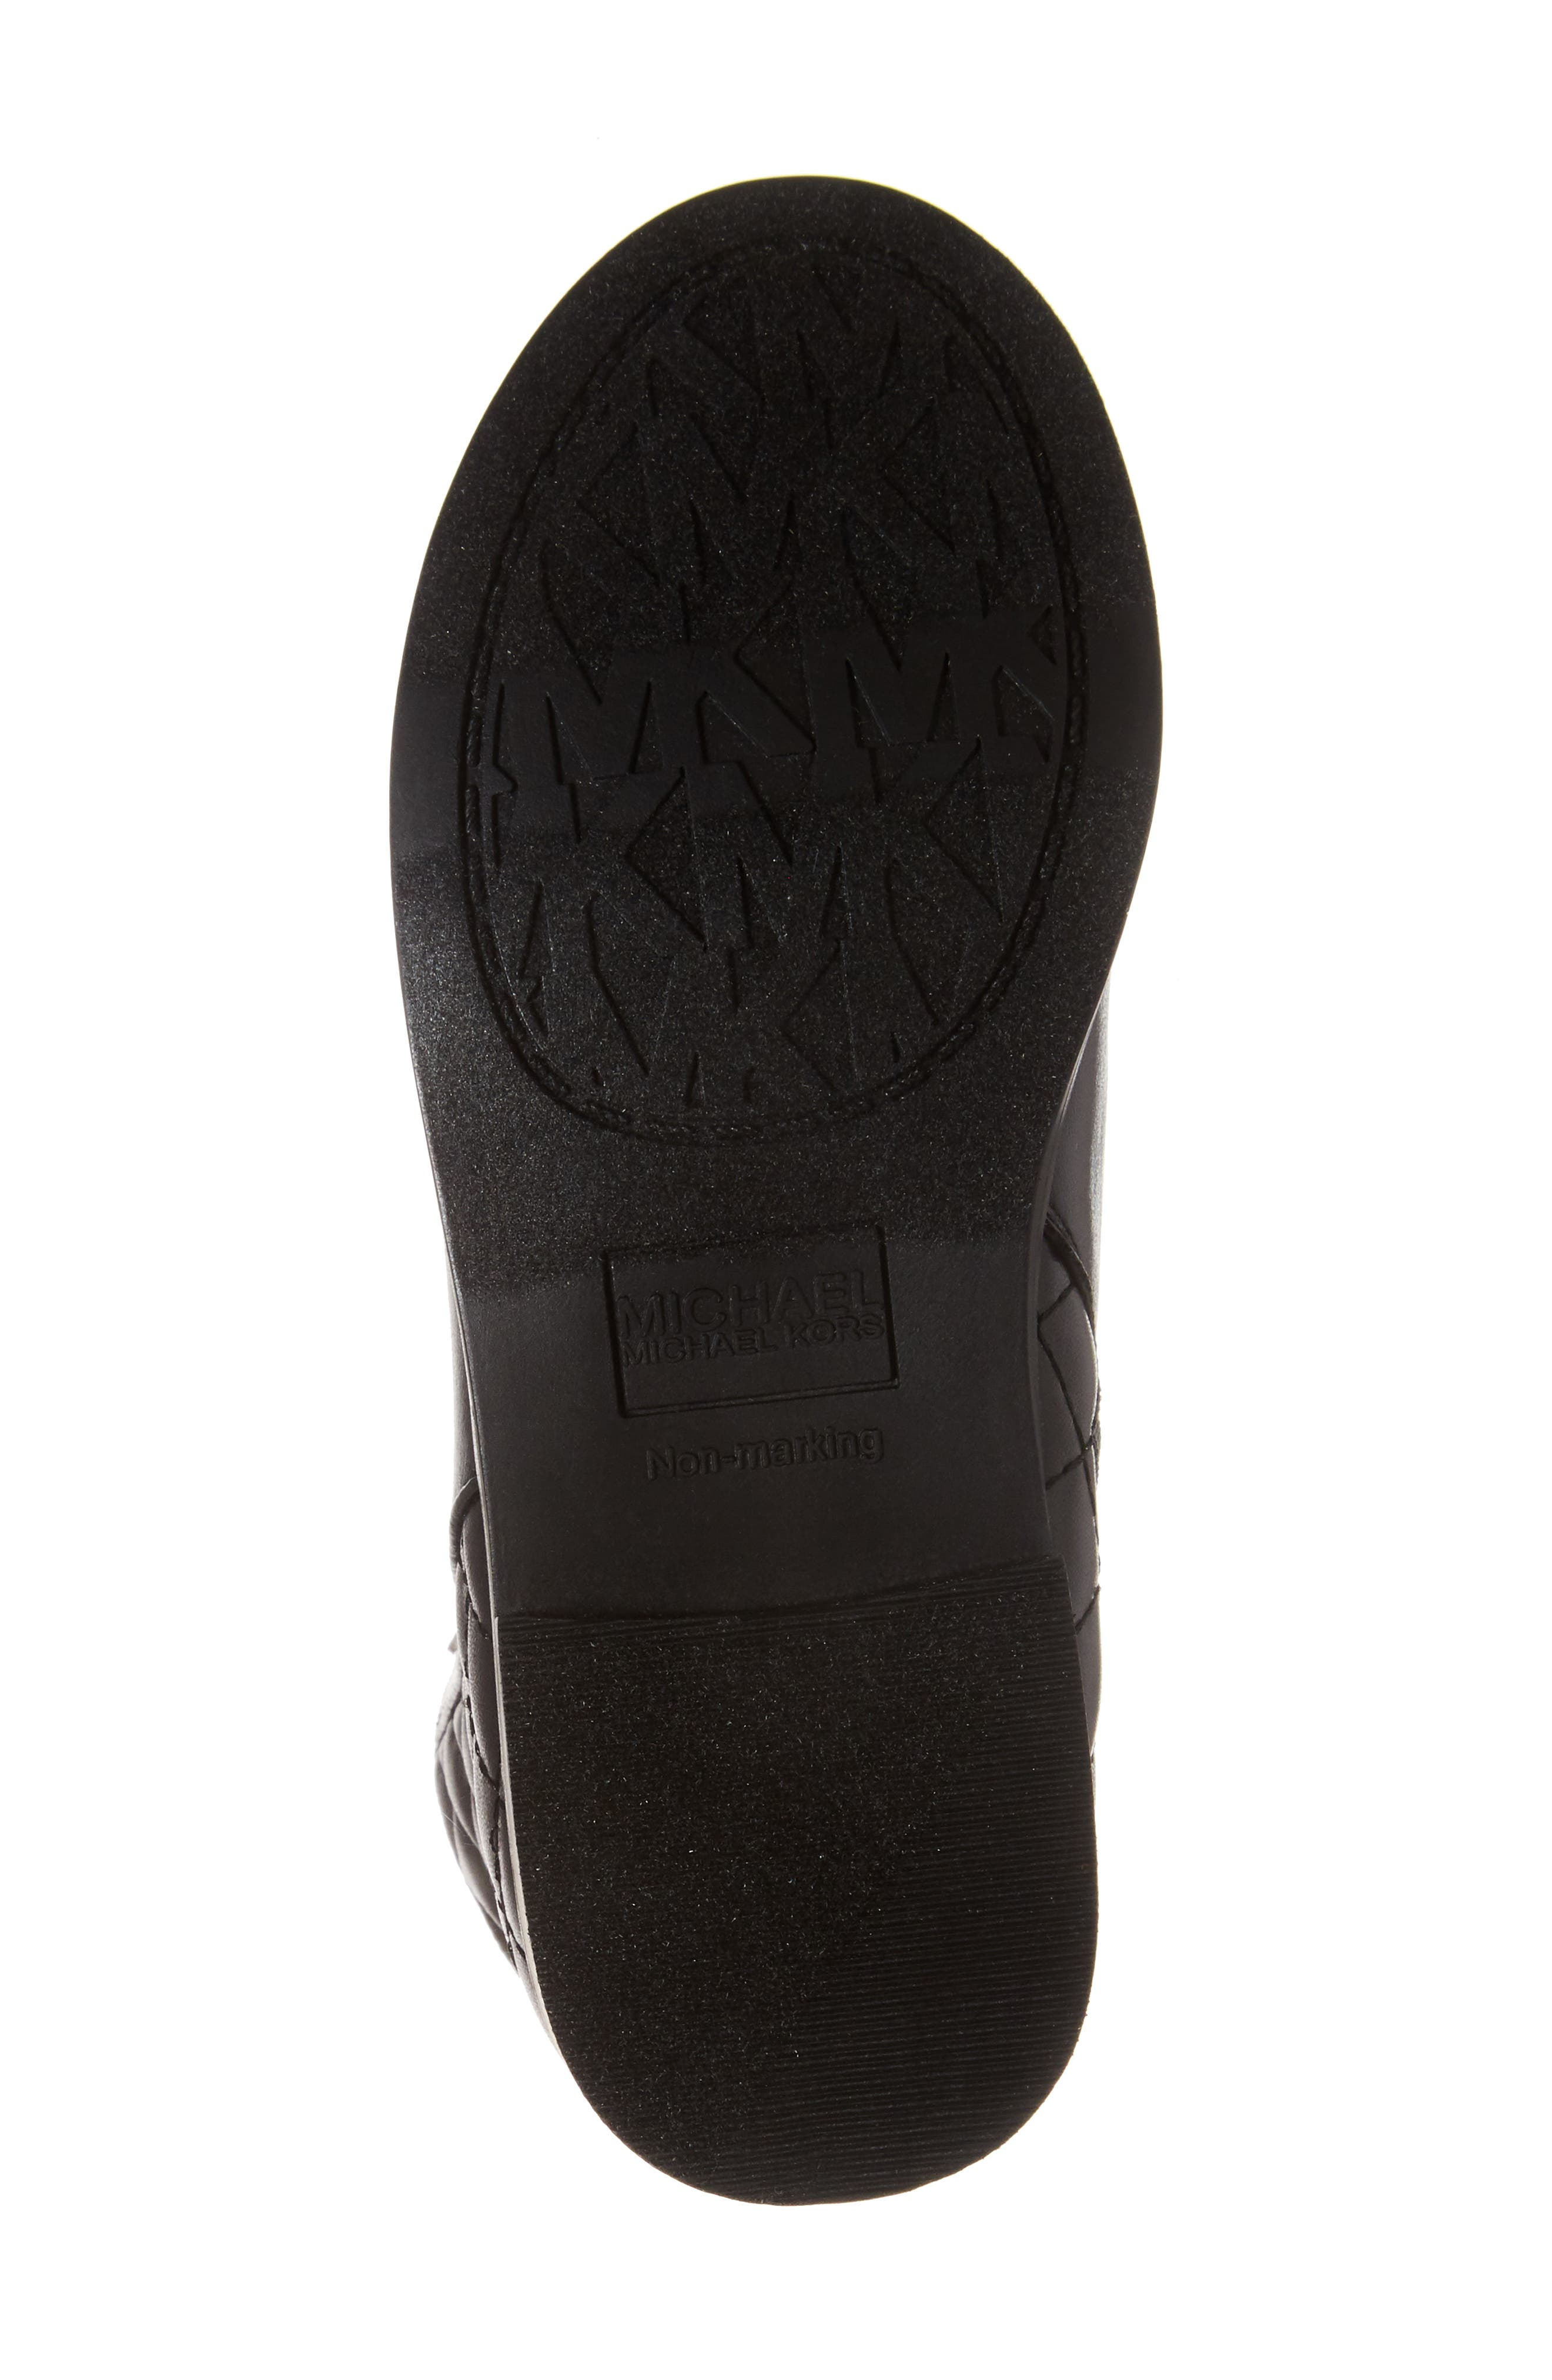 Emma Dede Quilted Bootie,                             Alternate thumbnail 6, color,                             003